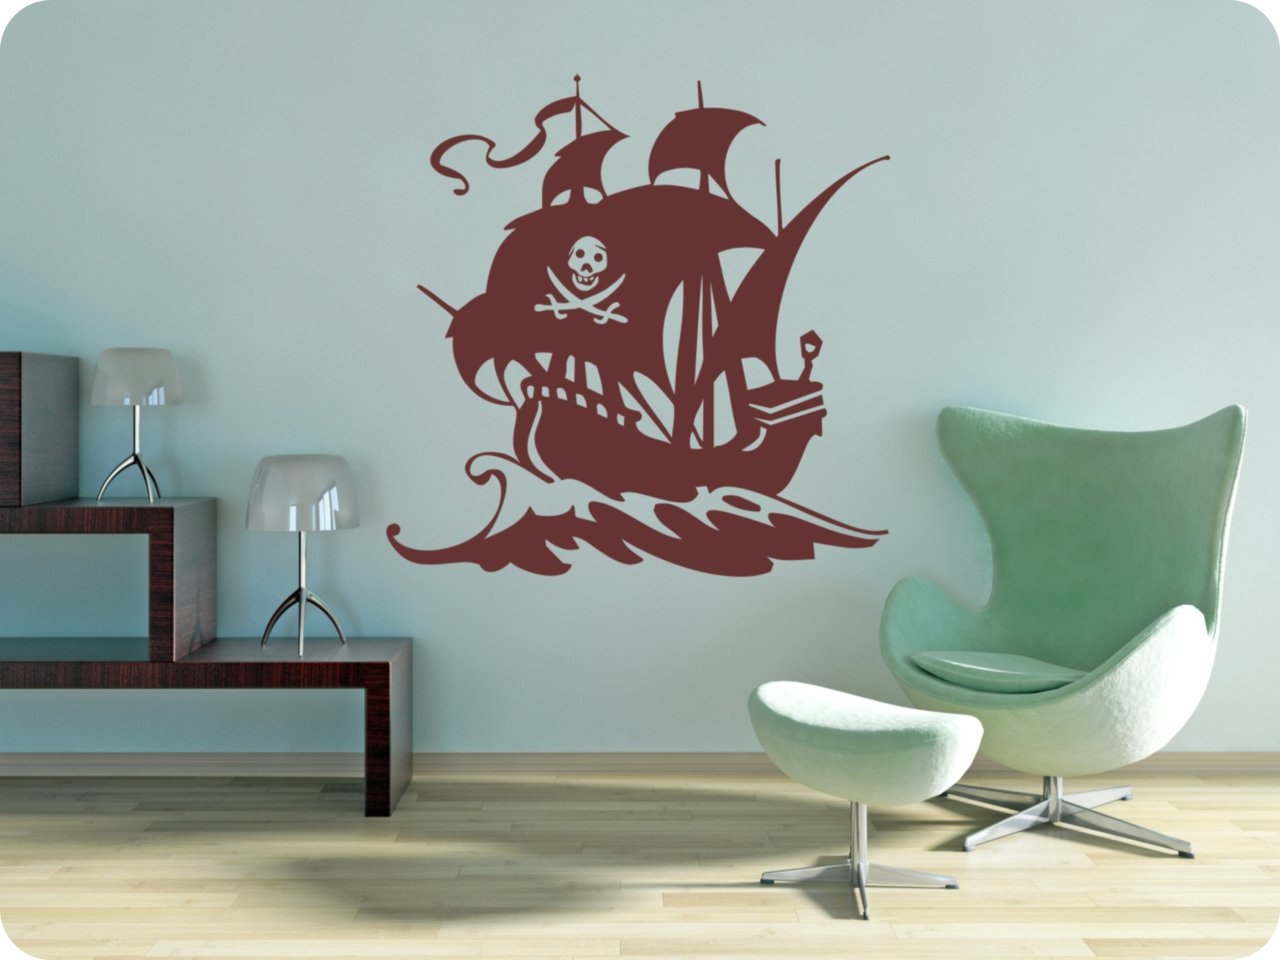 wandtattoo piratenschiff 327 1 wandsticker wandtattoos. Black Bedroom Furniture Sets. Home Design Ideas